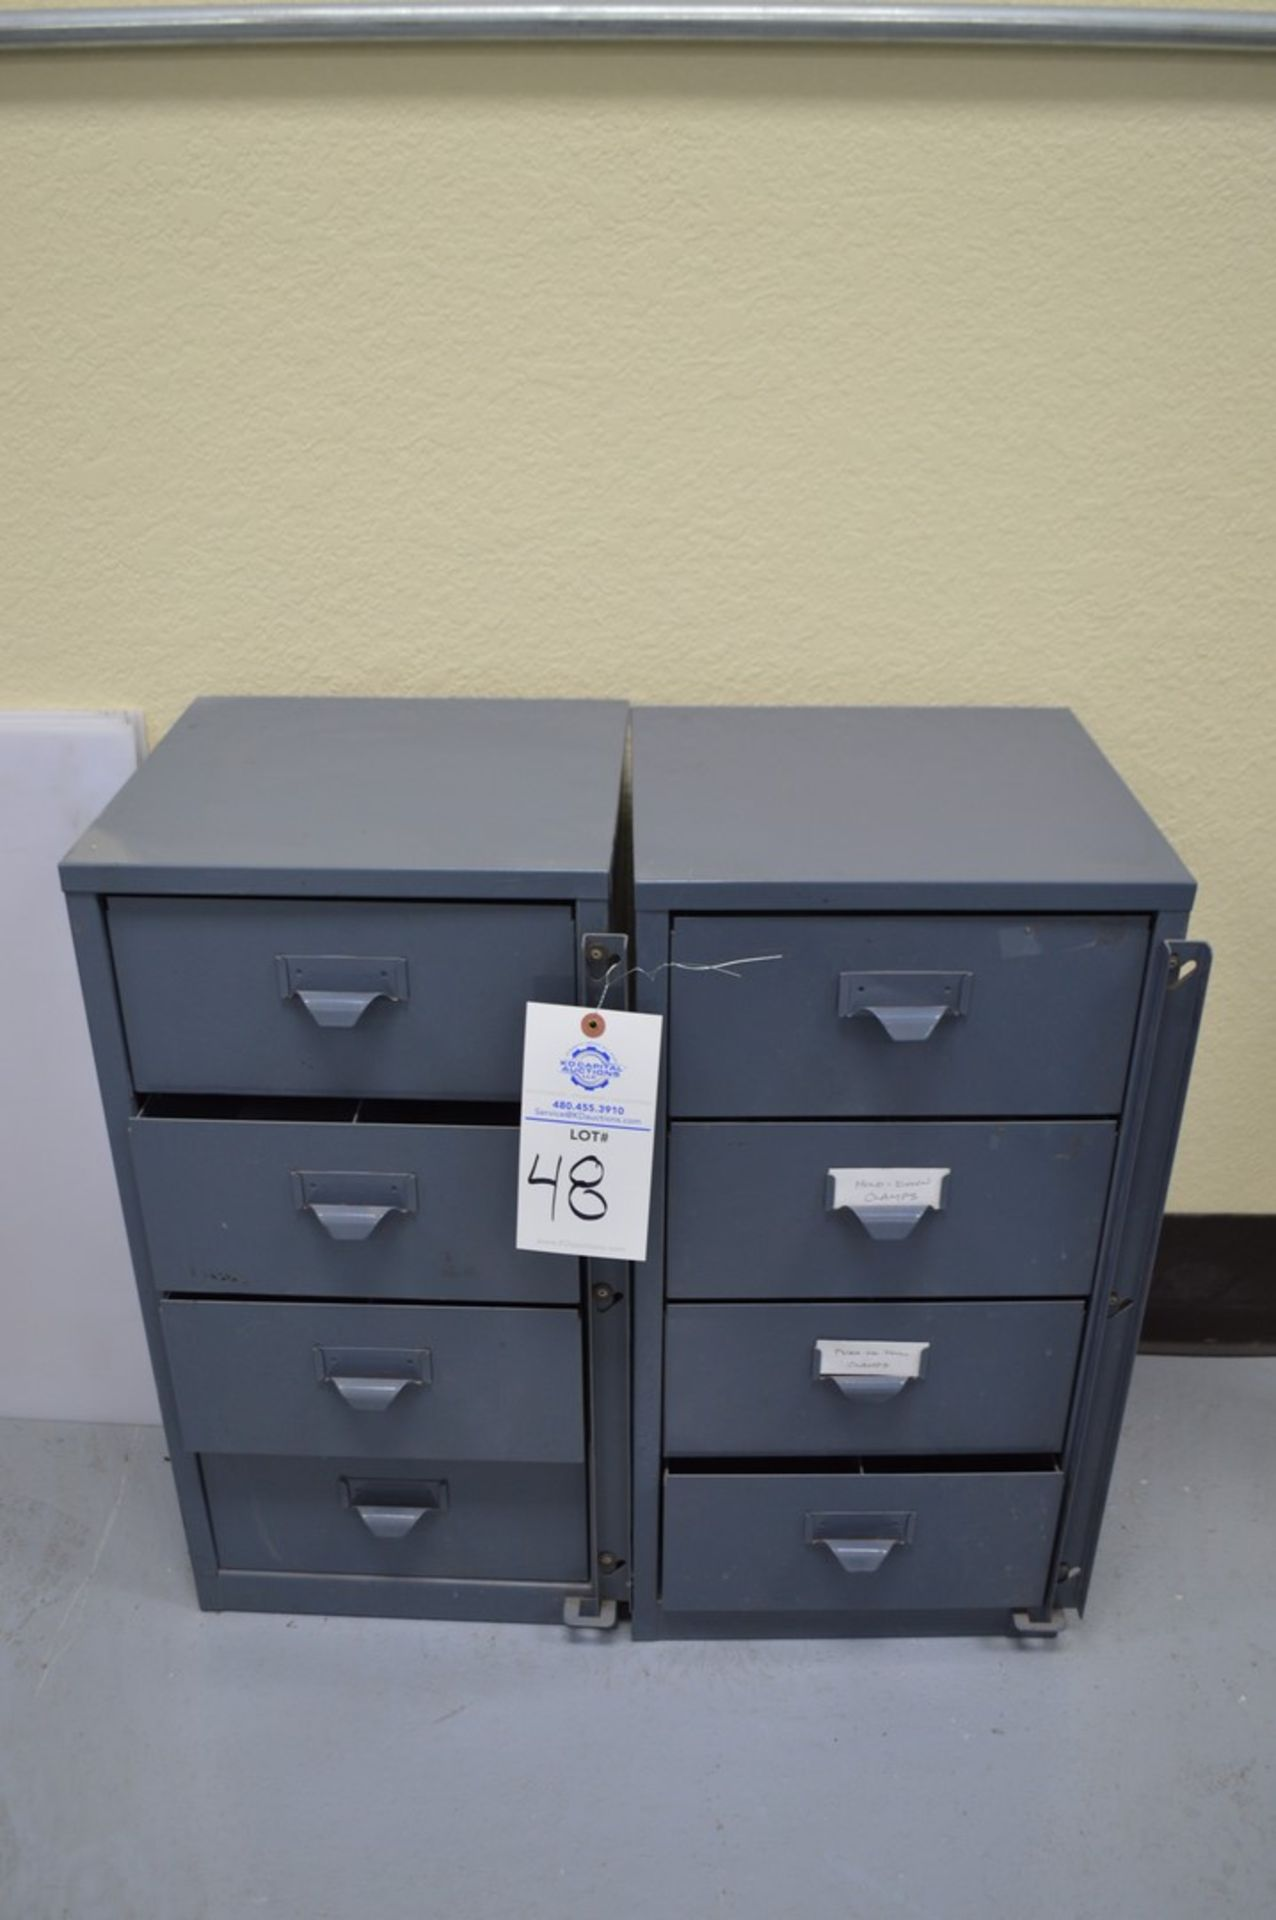 2 small grey 4 drawer cabinets with large assortment of various Di-Stay-Co hold down clamps